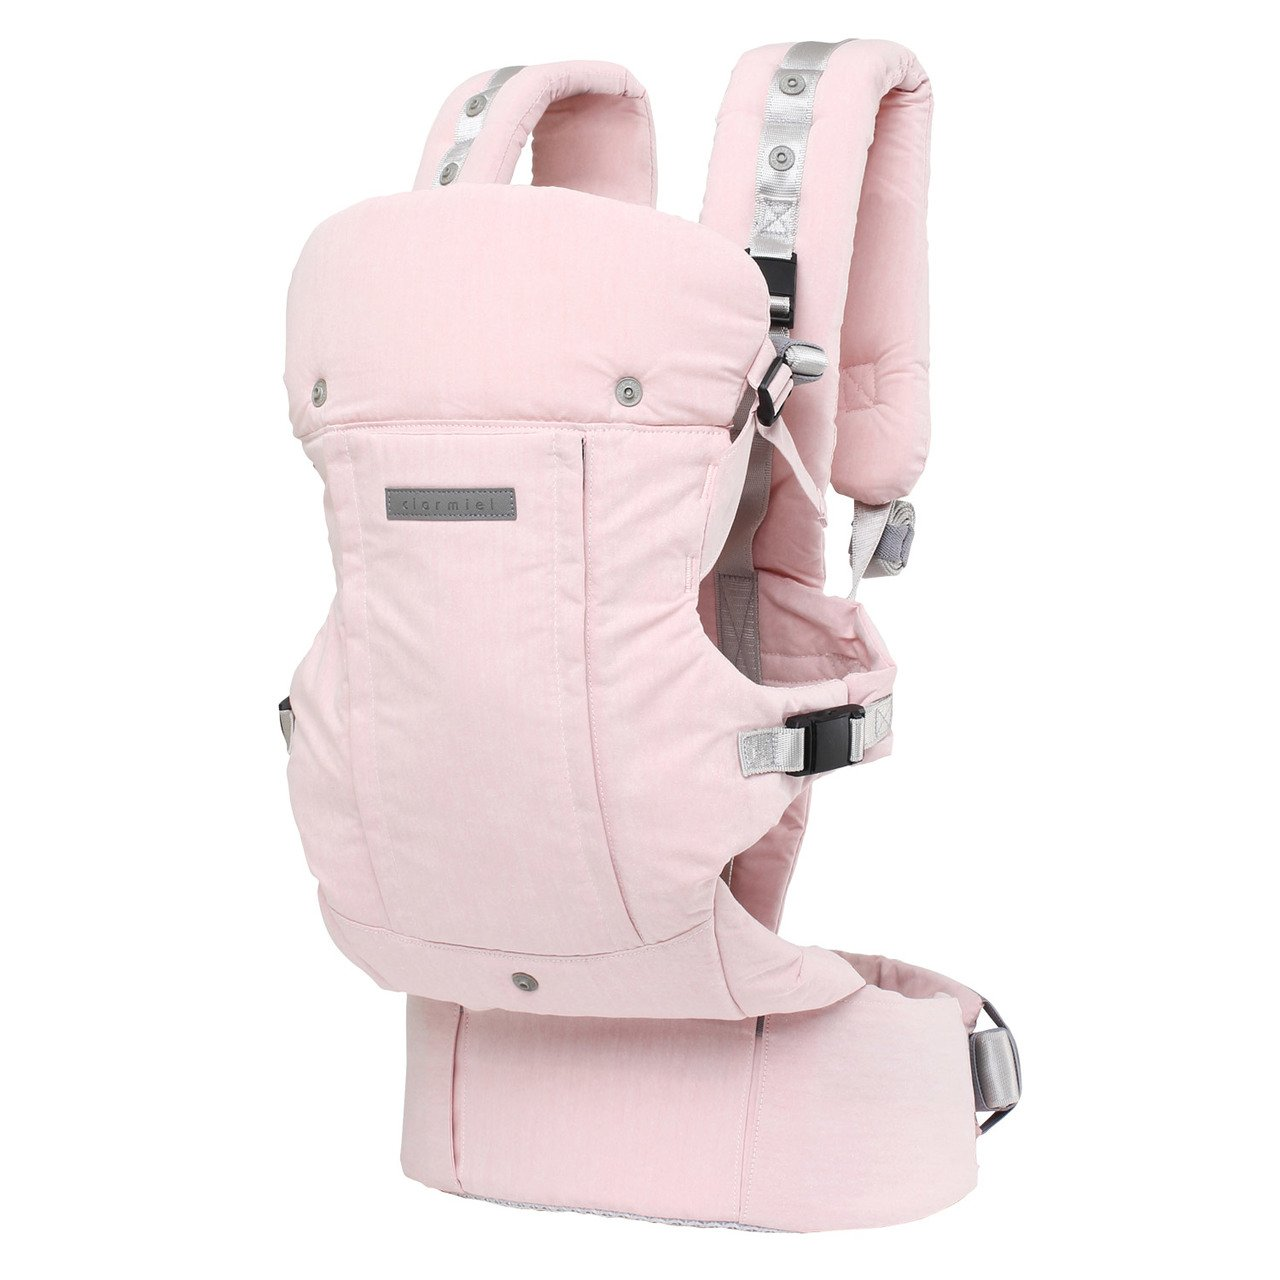 CLARMIEL One Touch Magnetic Baby and Toddler Carrier, Cool Comfort All Season Fabric, Multi-Position Ergonomic Design, Premium German-Made Magnetic Buckles Pink